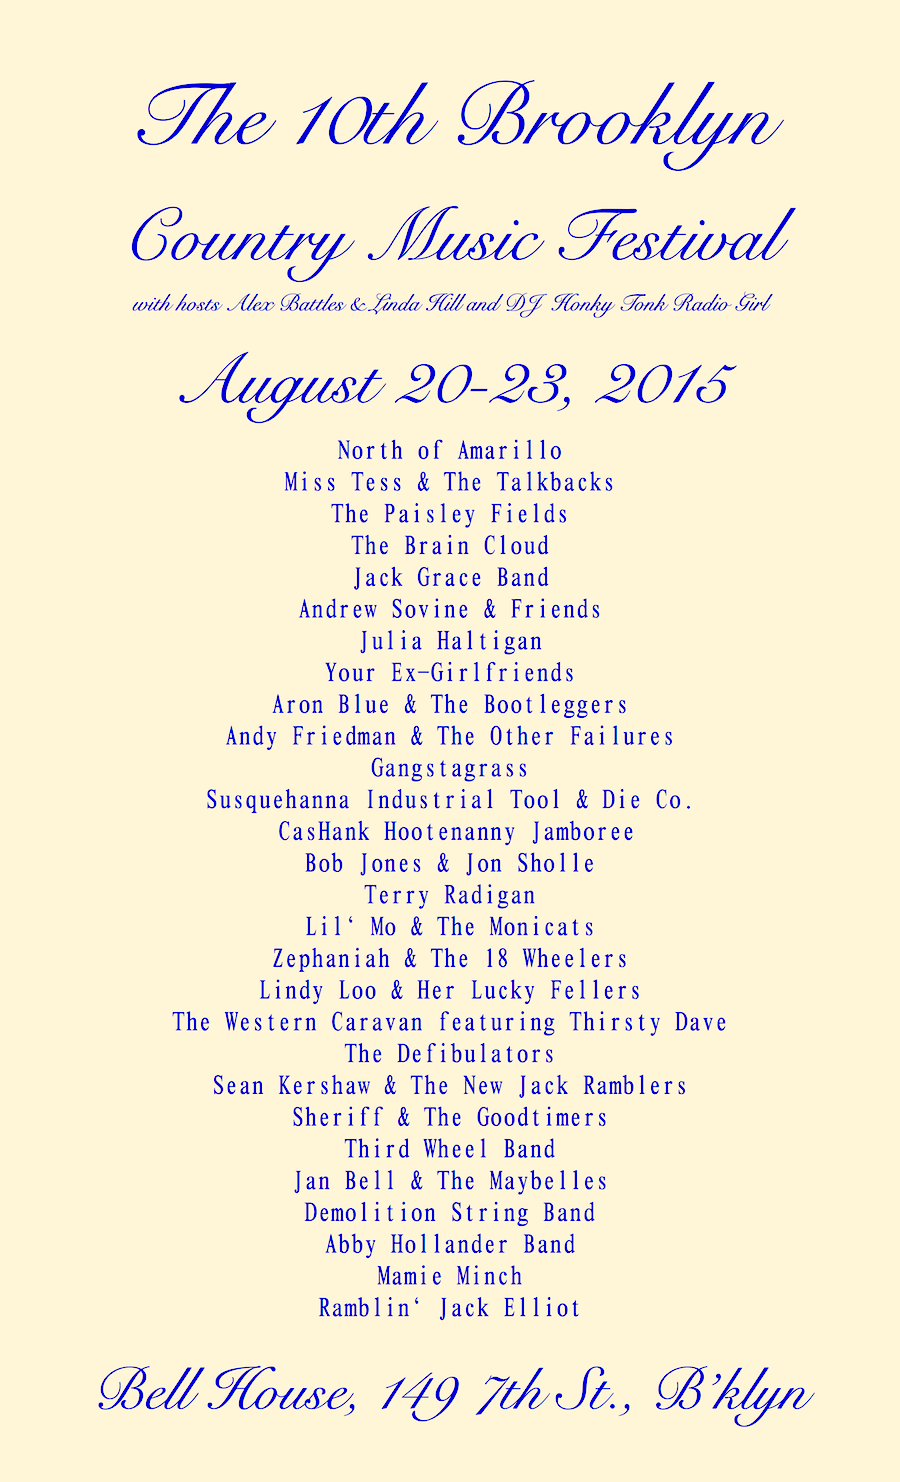 The Tenth Brooklyn Country Music Festival, August           20-23, 2015 at the Bell House